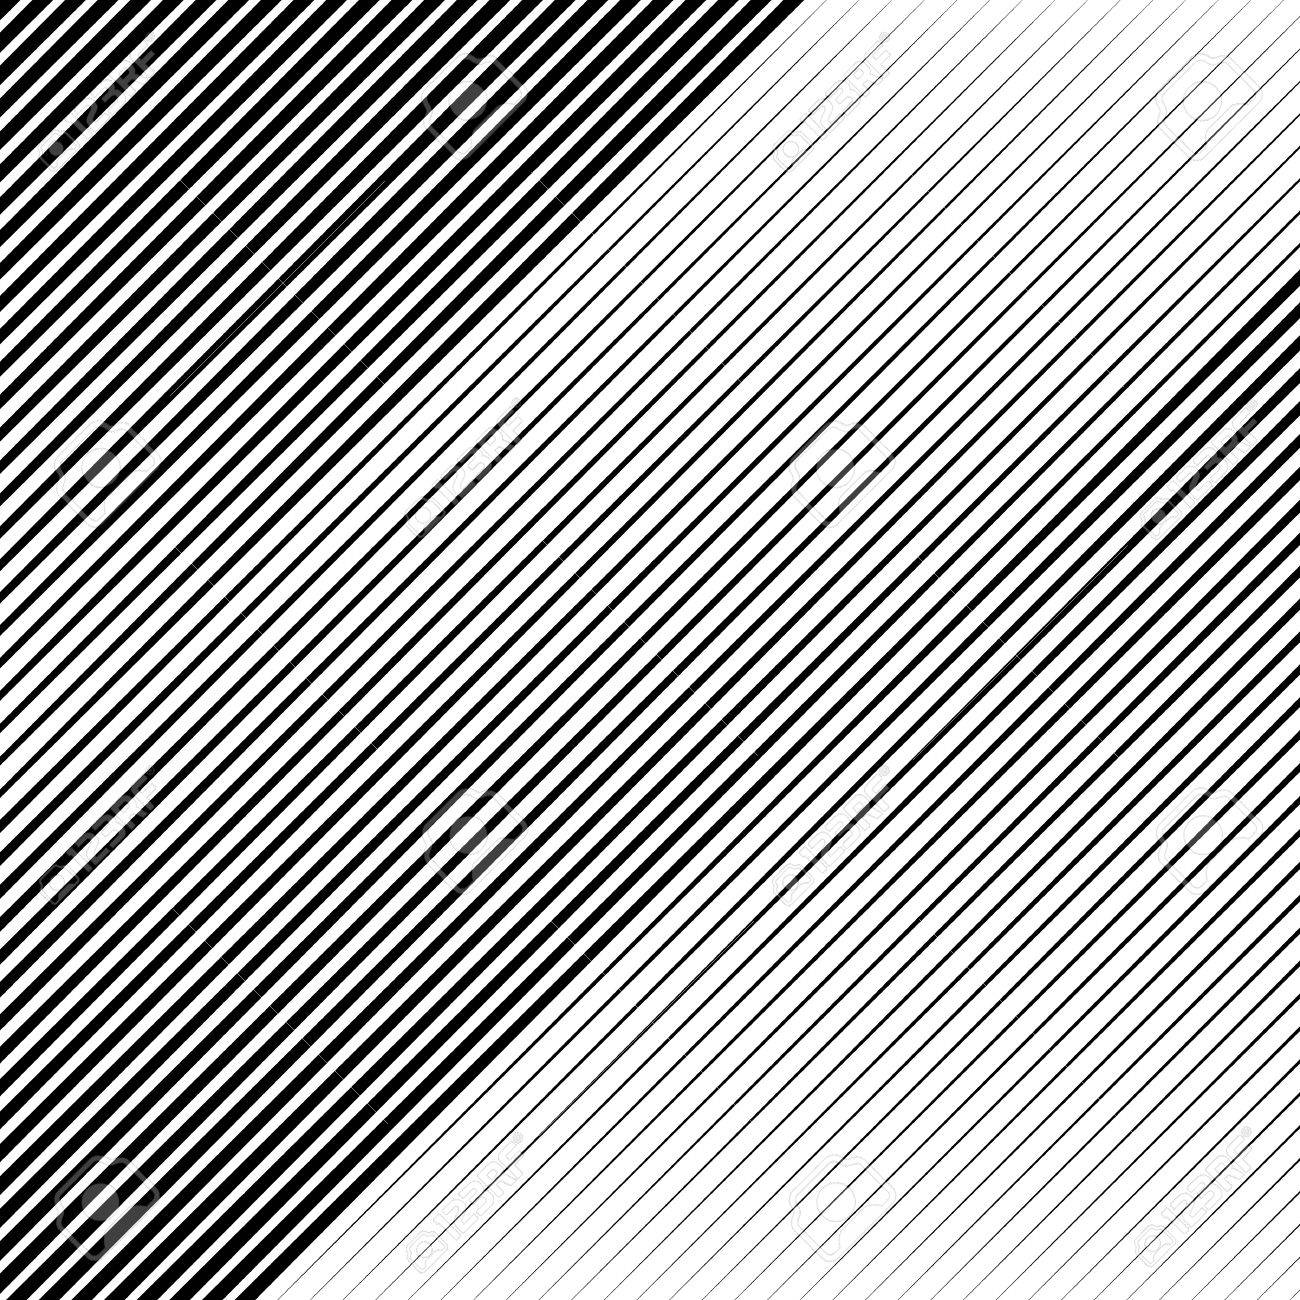 oblique, diagonal lines edgy pattern, monochrome background. royalty